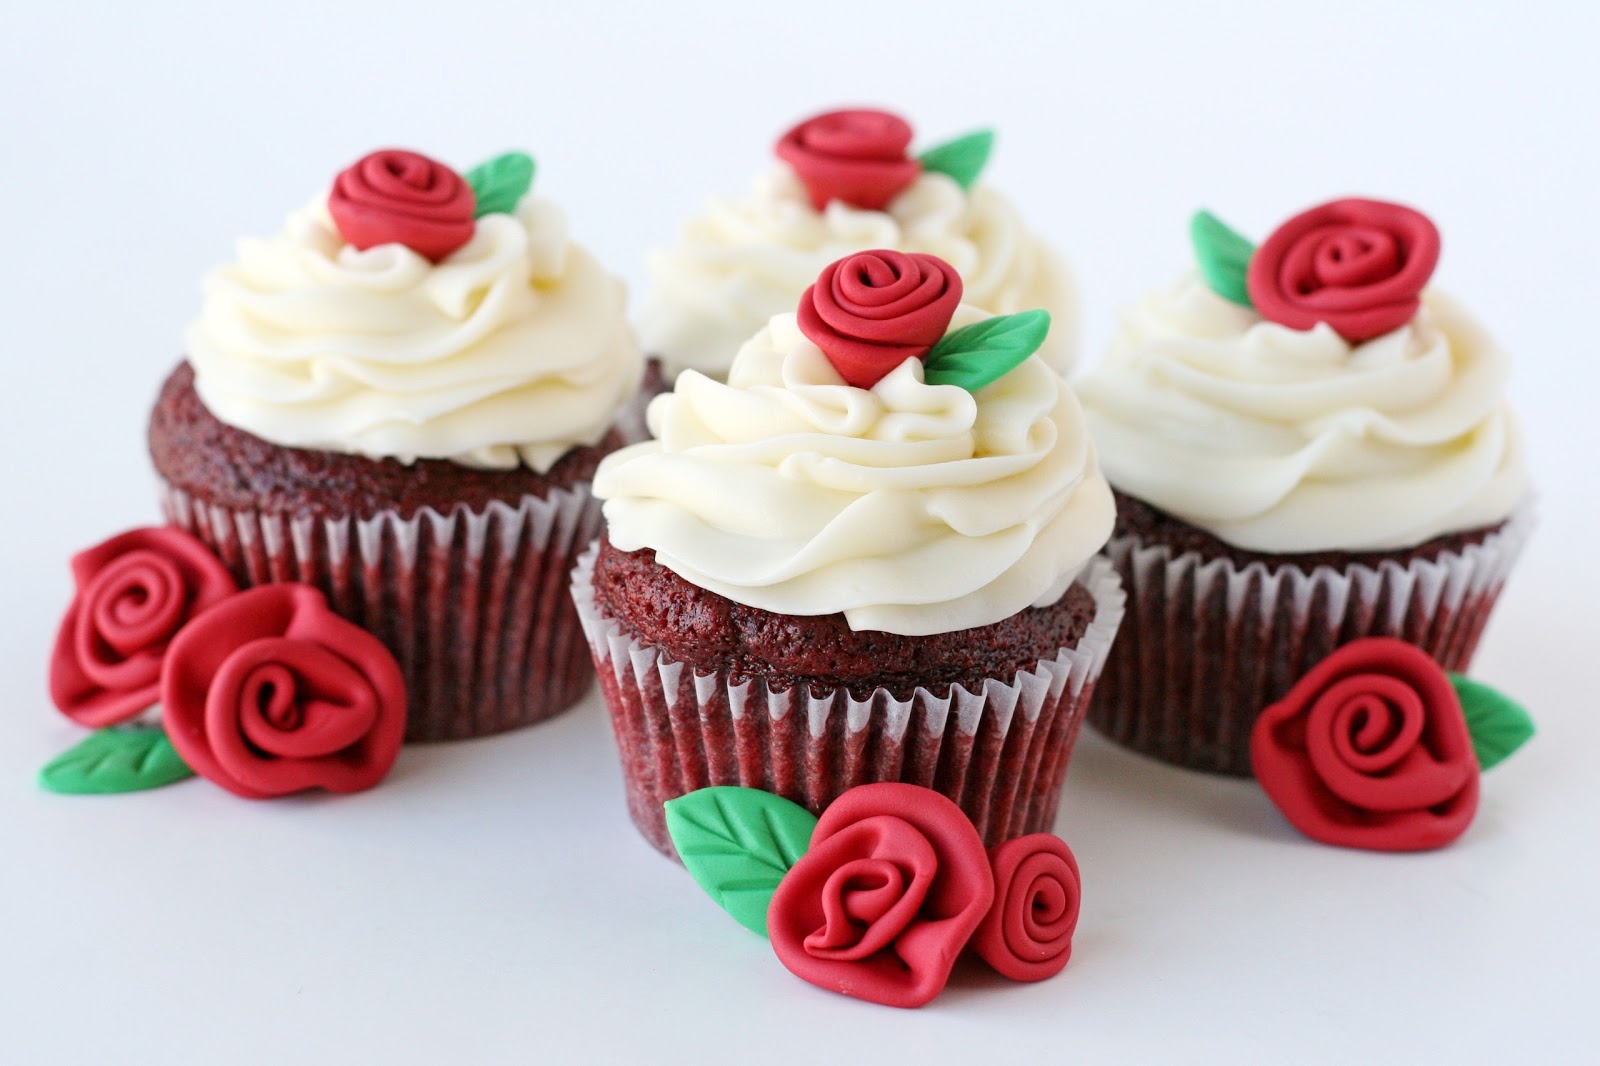 Red Velvet Cupcakes with Roses {Recipe} – Glorious Treats